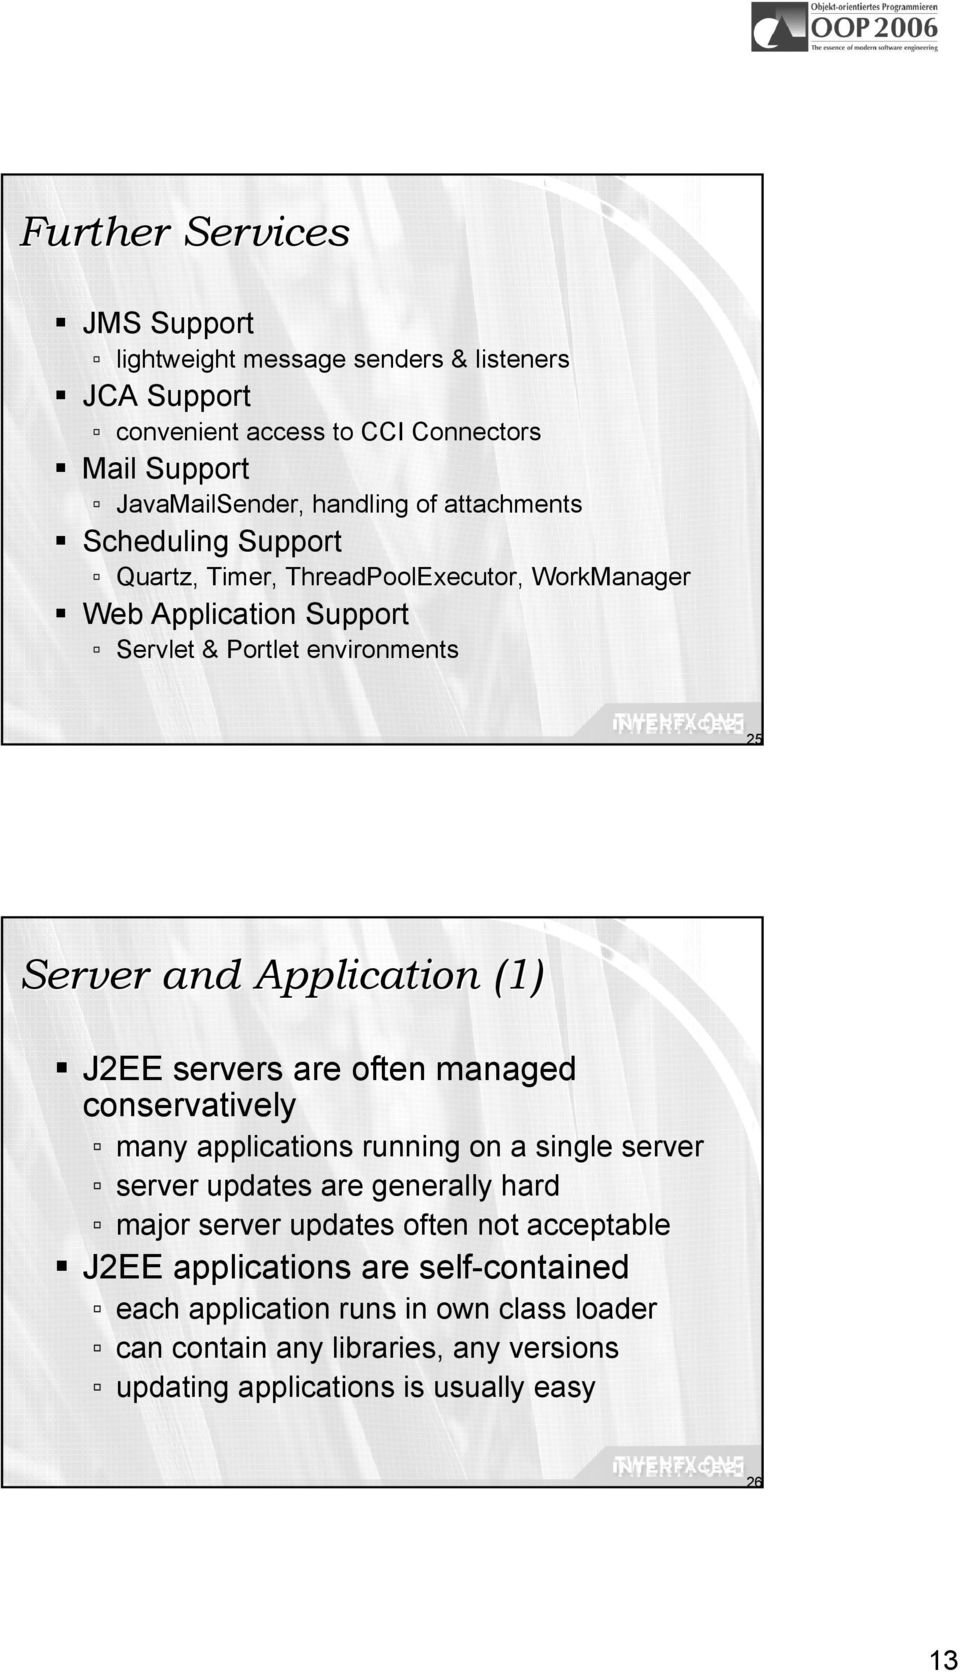 J2EE servers are often managed conservatively many applications running on a single server server updates are generally hard major server updates often not